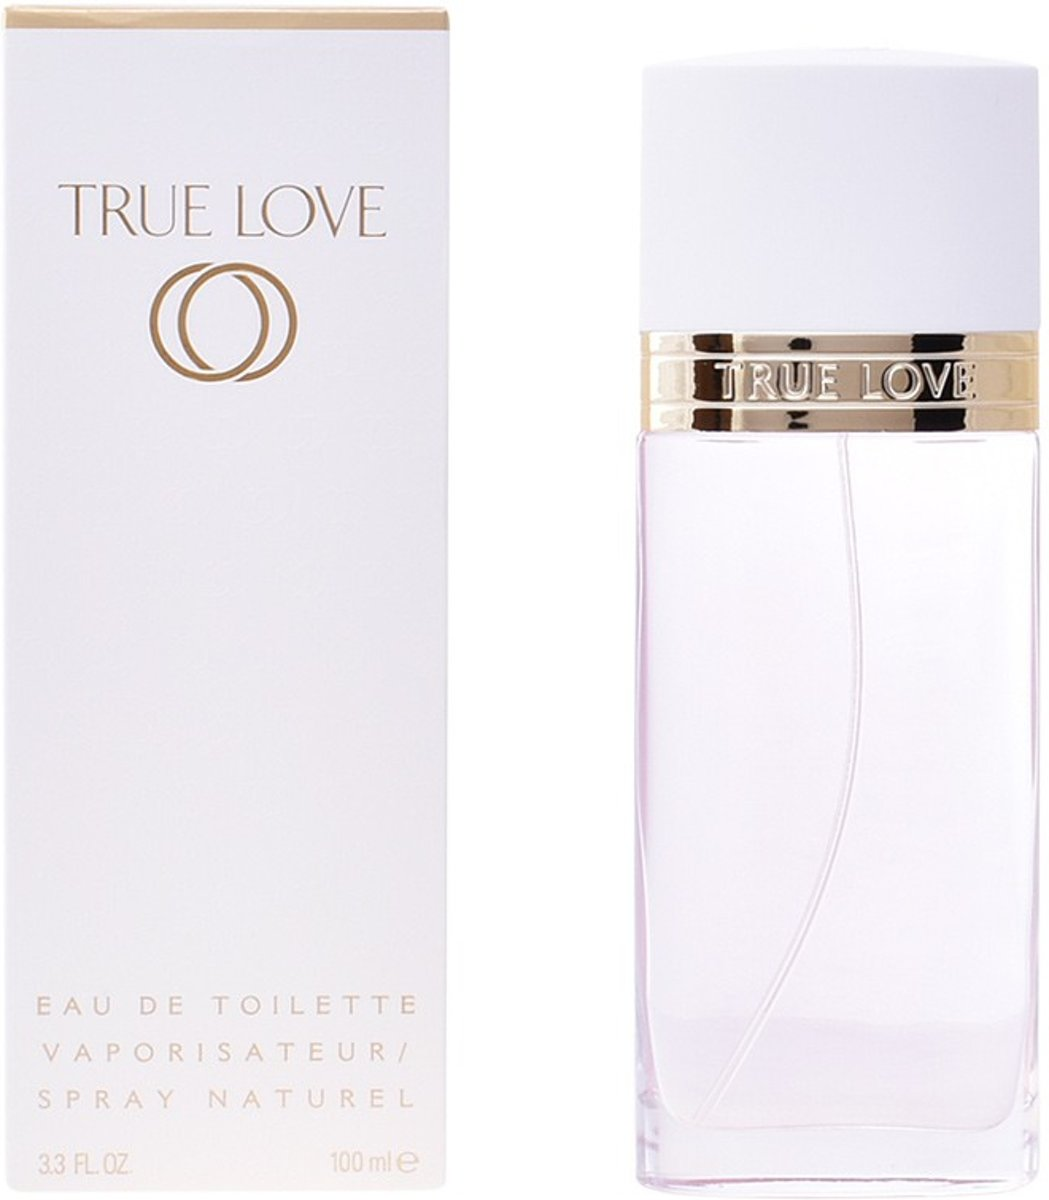 MULTI BUNDEL 2 stuks TRUE LOVE eau de toilette spray 100 ml